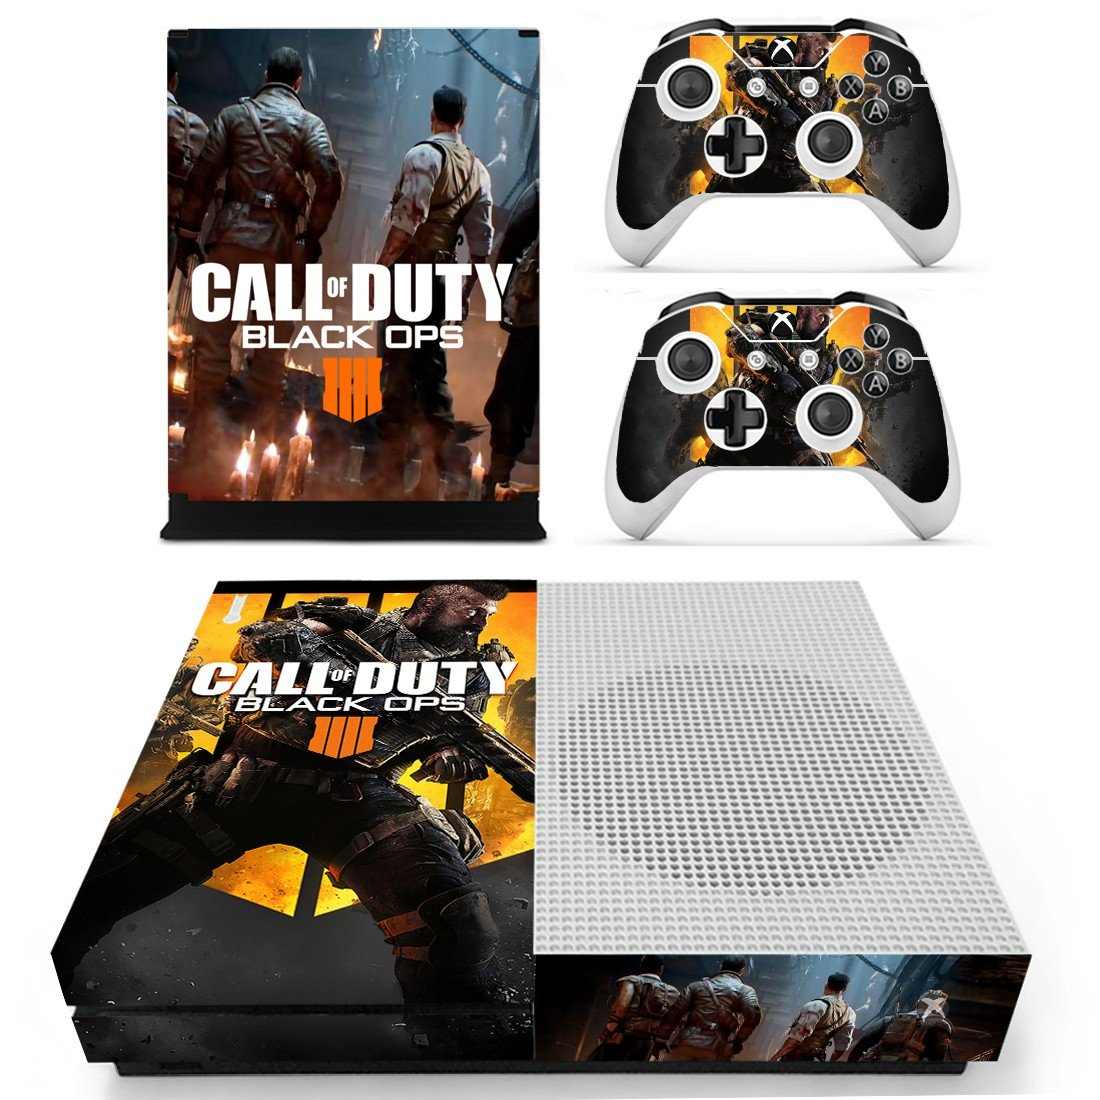 Call of Duty Black ops 4 decal skin sticker for Xbox One S console and controllers